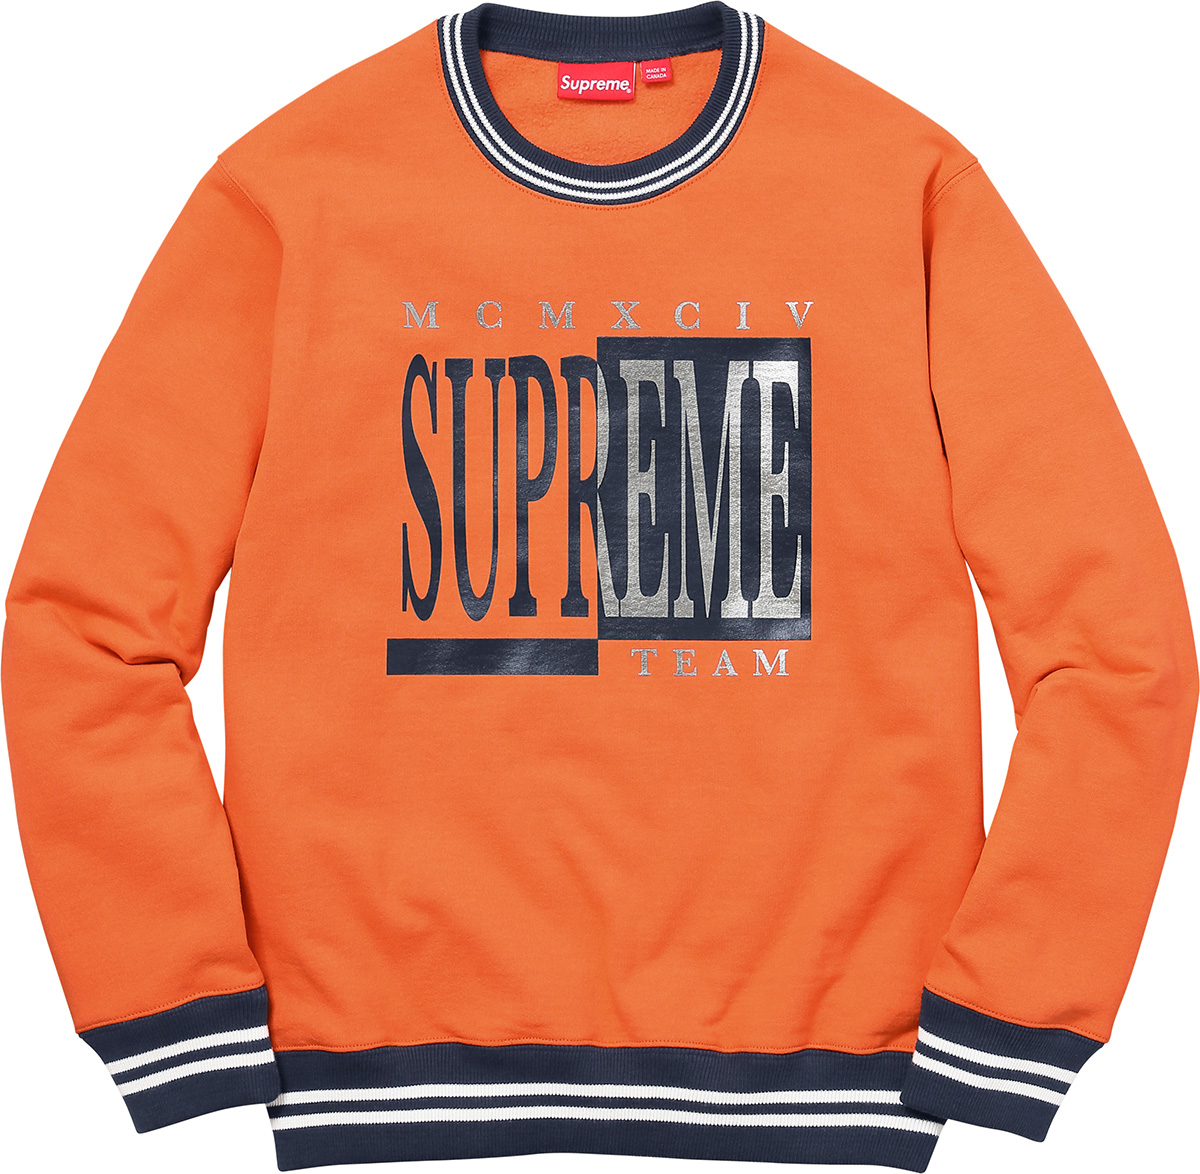 supreme-2017aw-fall-winter-team-crewneck